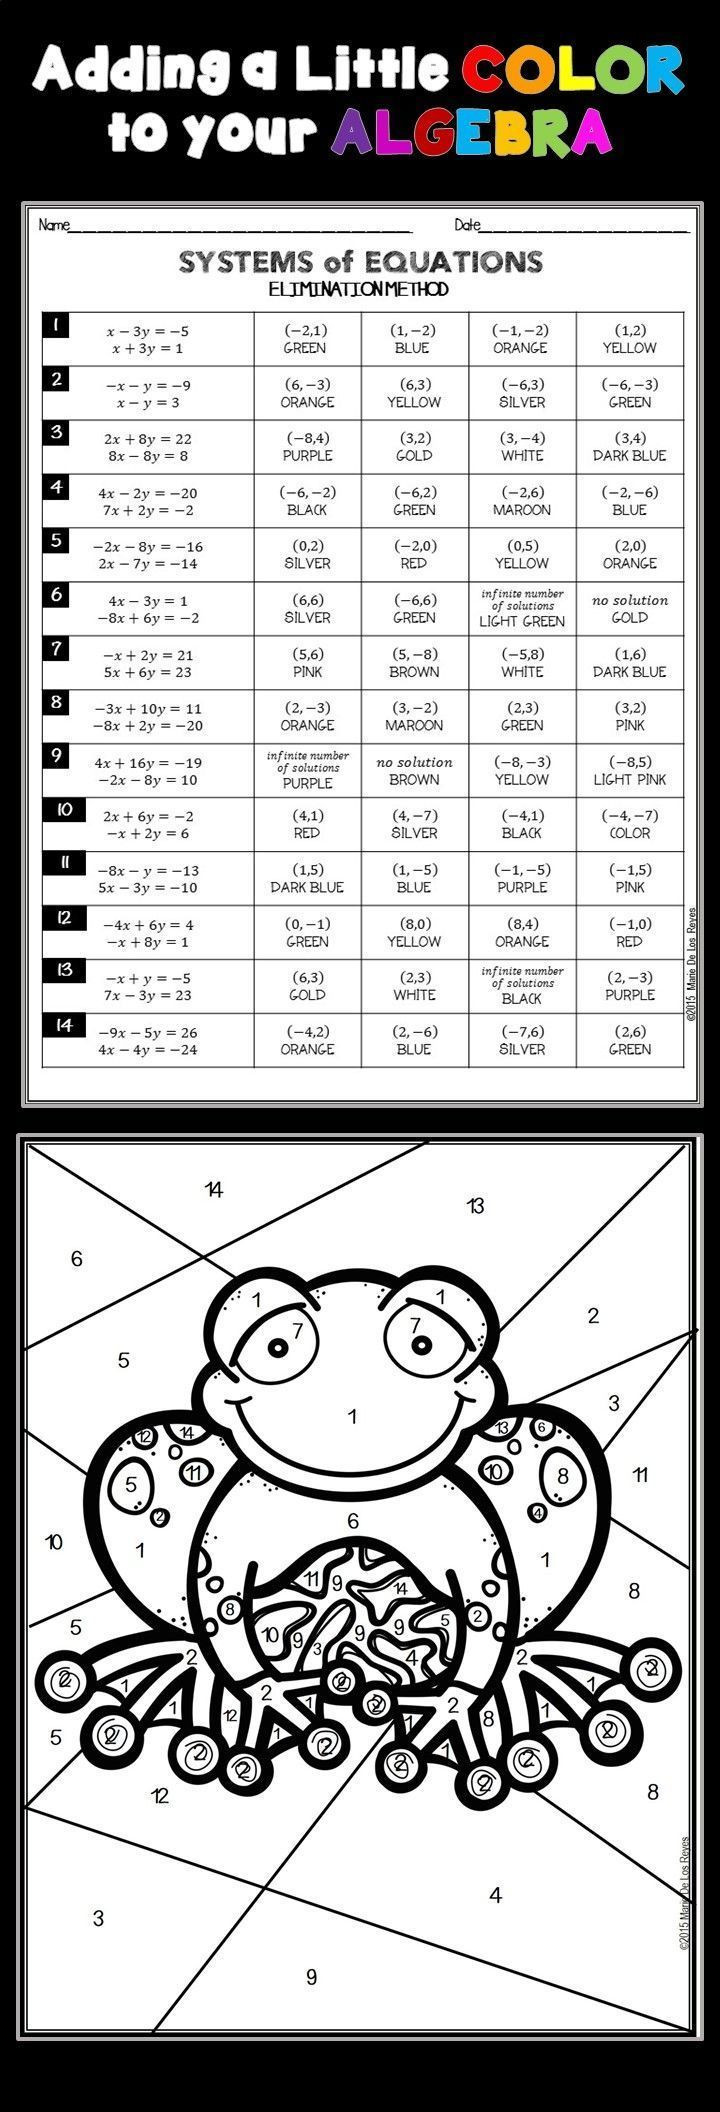 Systems Of Equations Elimination Worksheet solving Systems Of Equations Elimination Method Activity